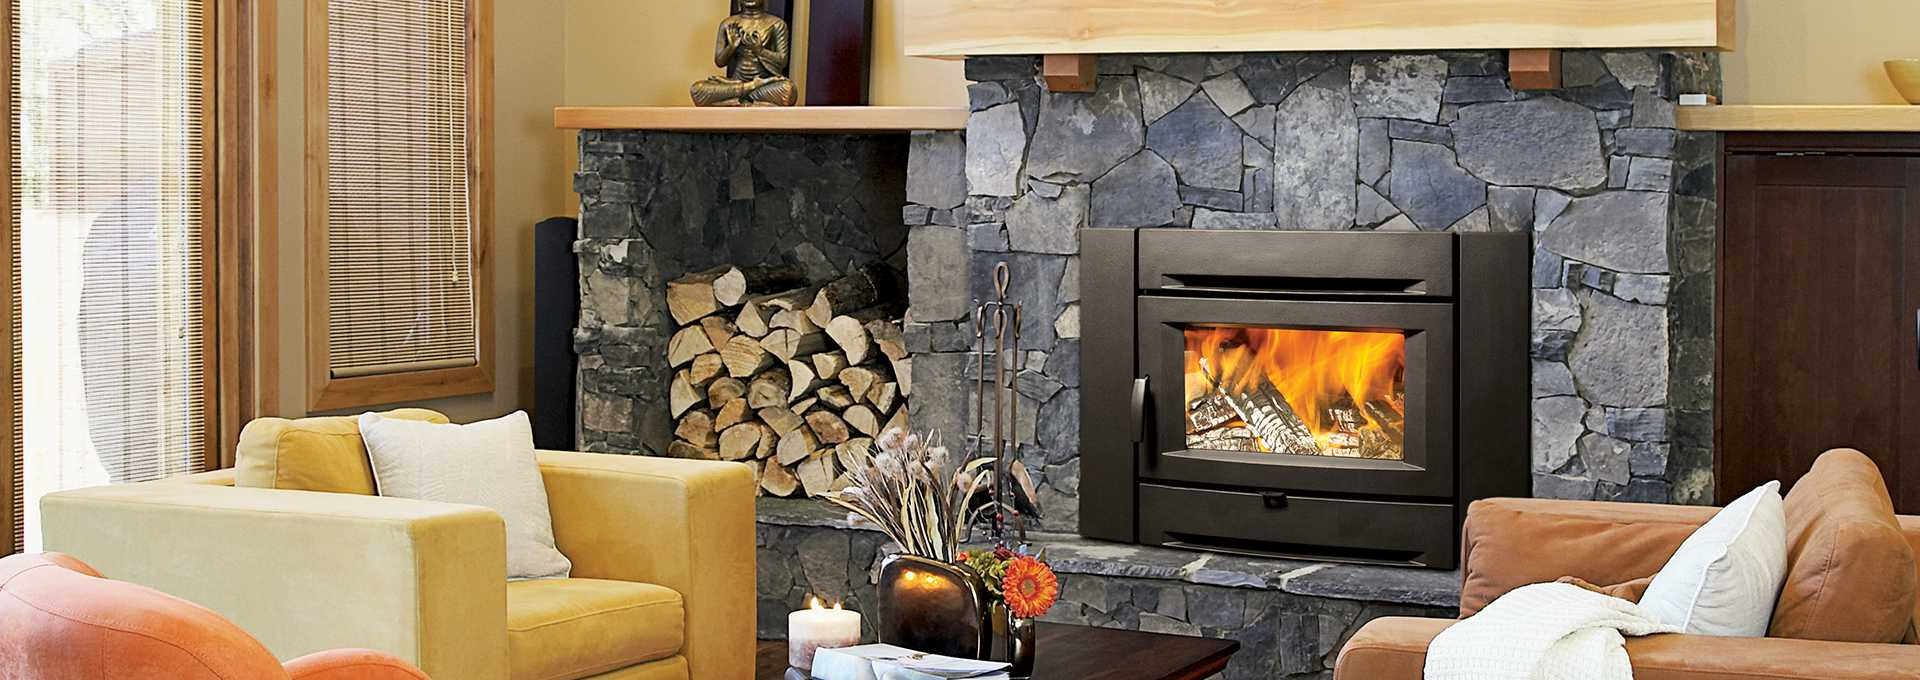 Fall Fireplace Maintenance & Decorating Tips